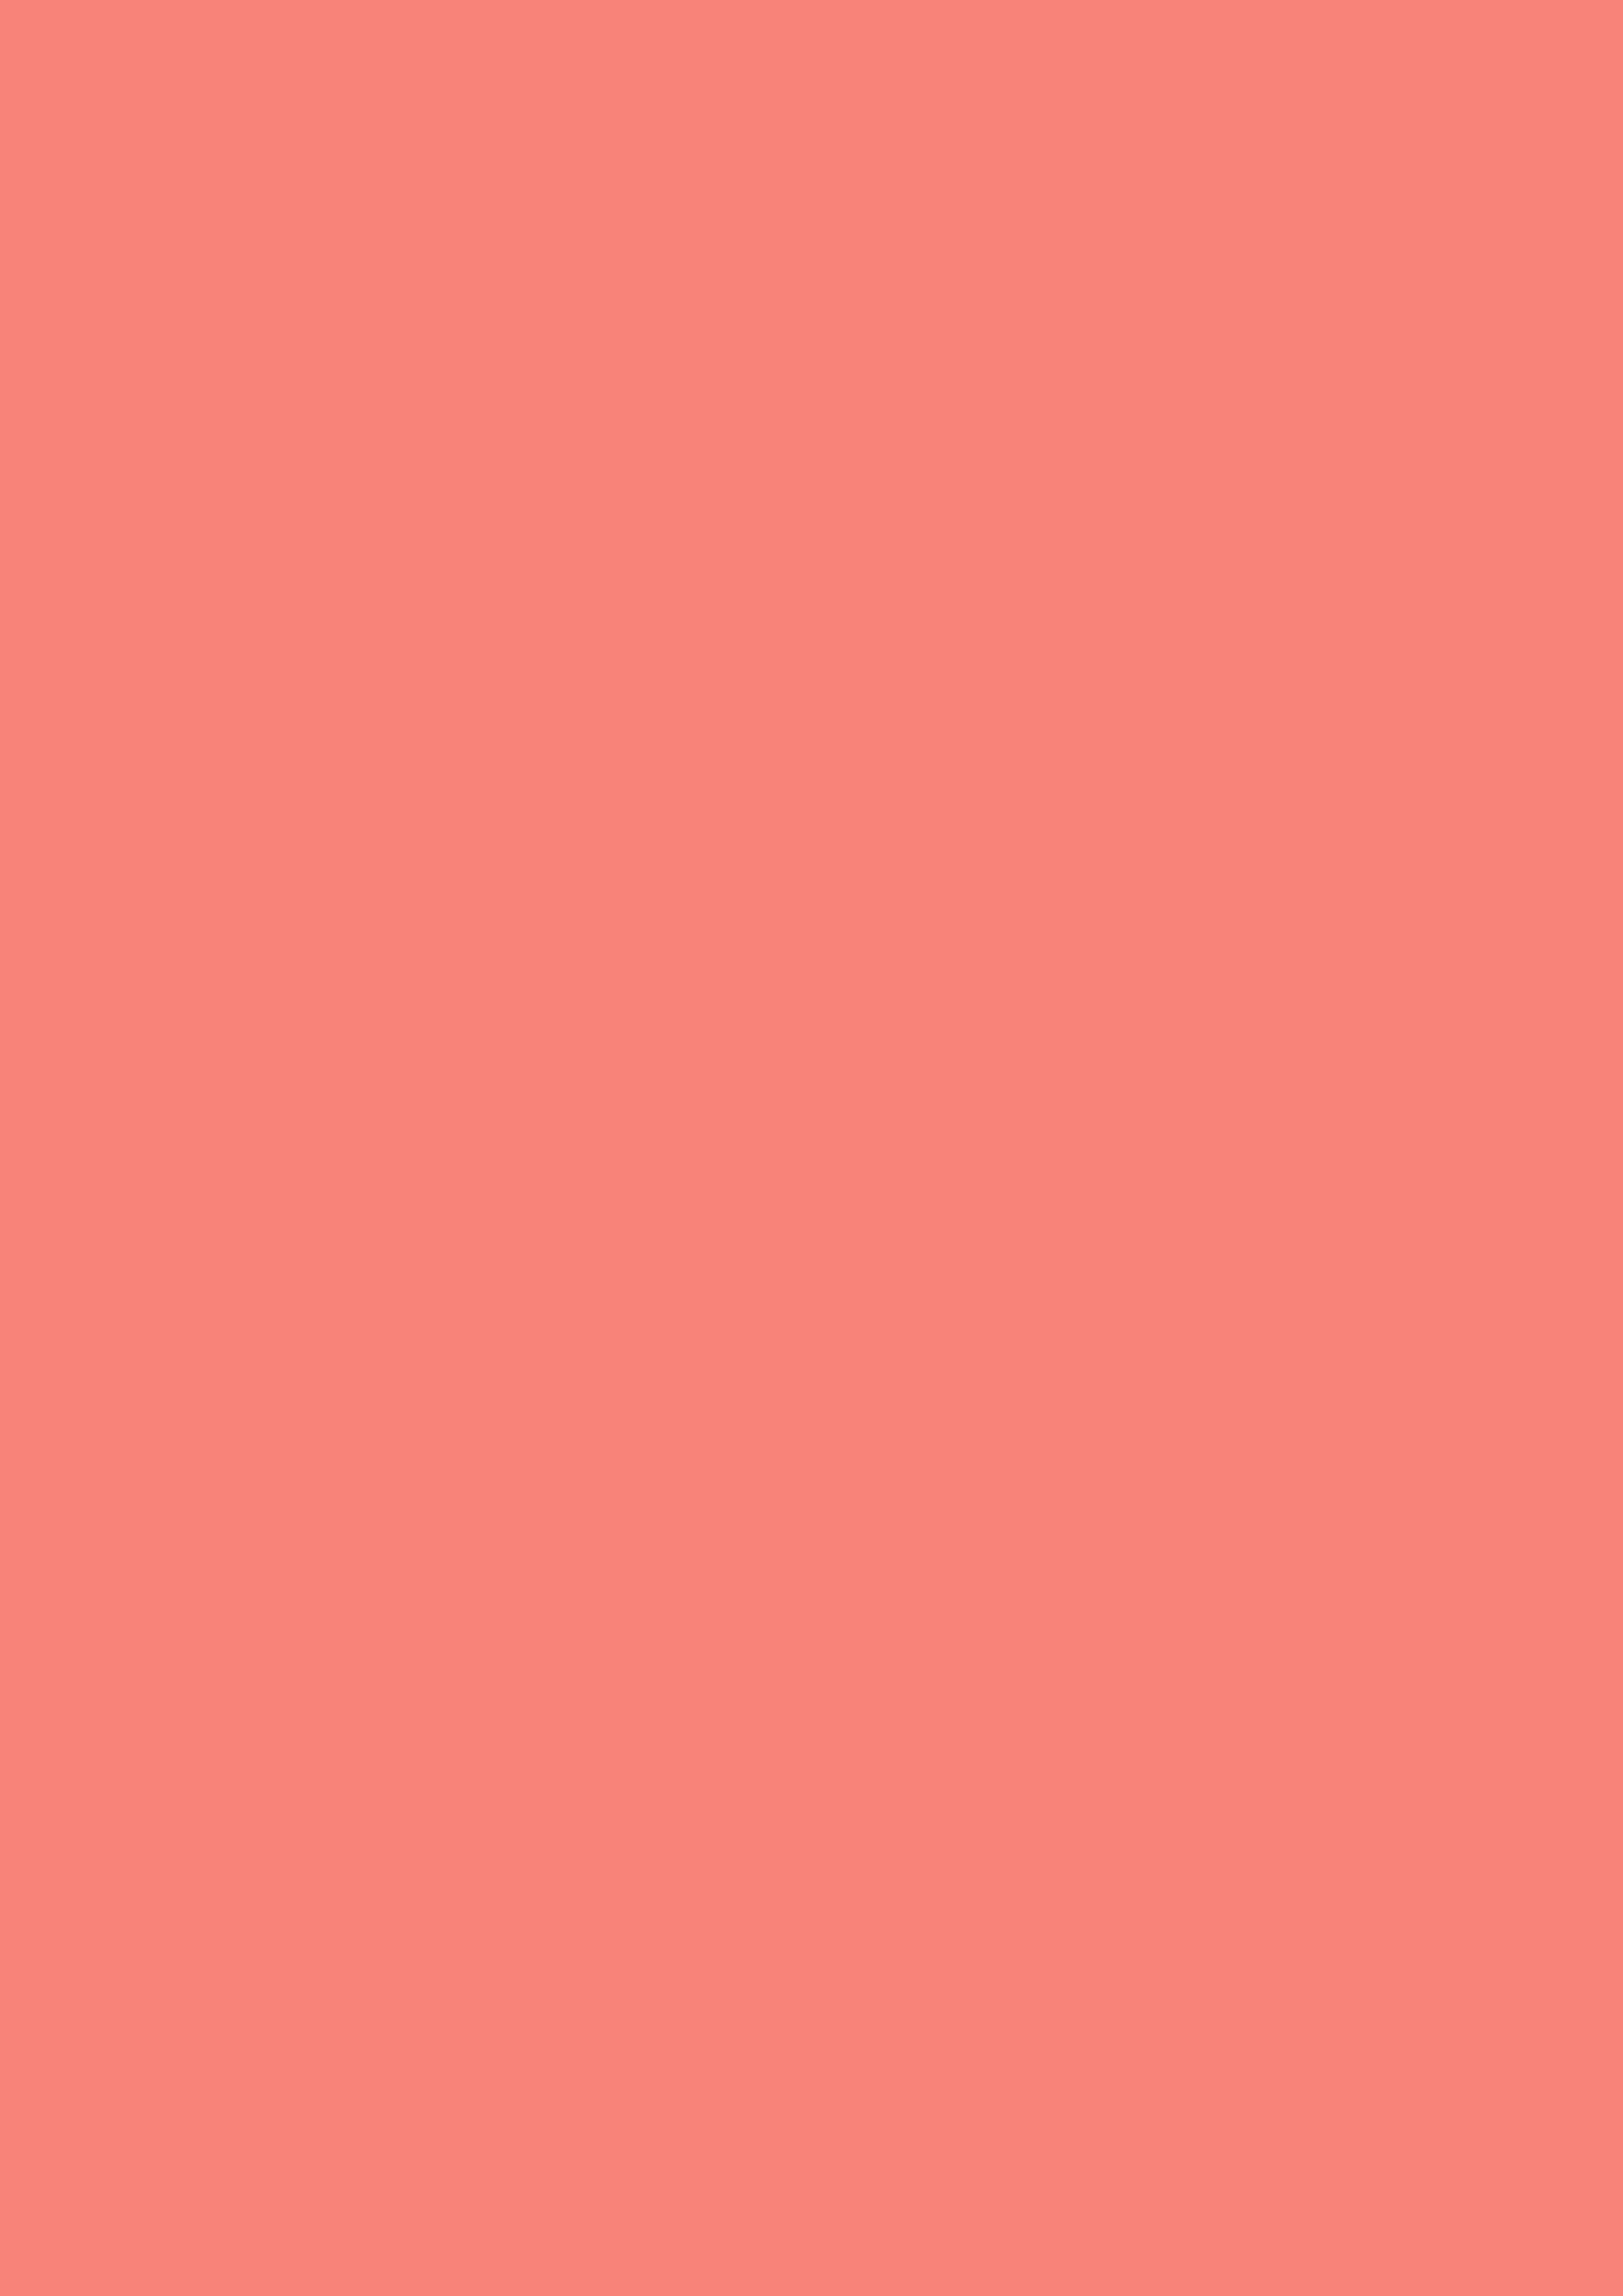 2480x3508 Coral Pink Solid Color Background